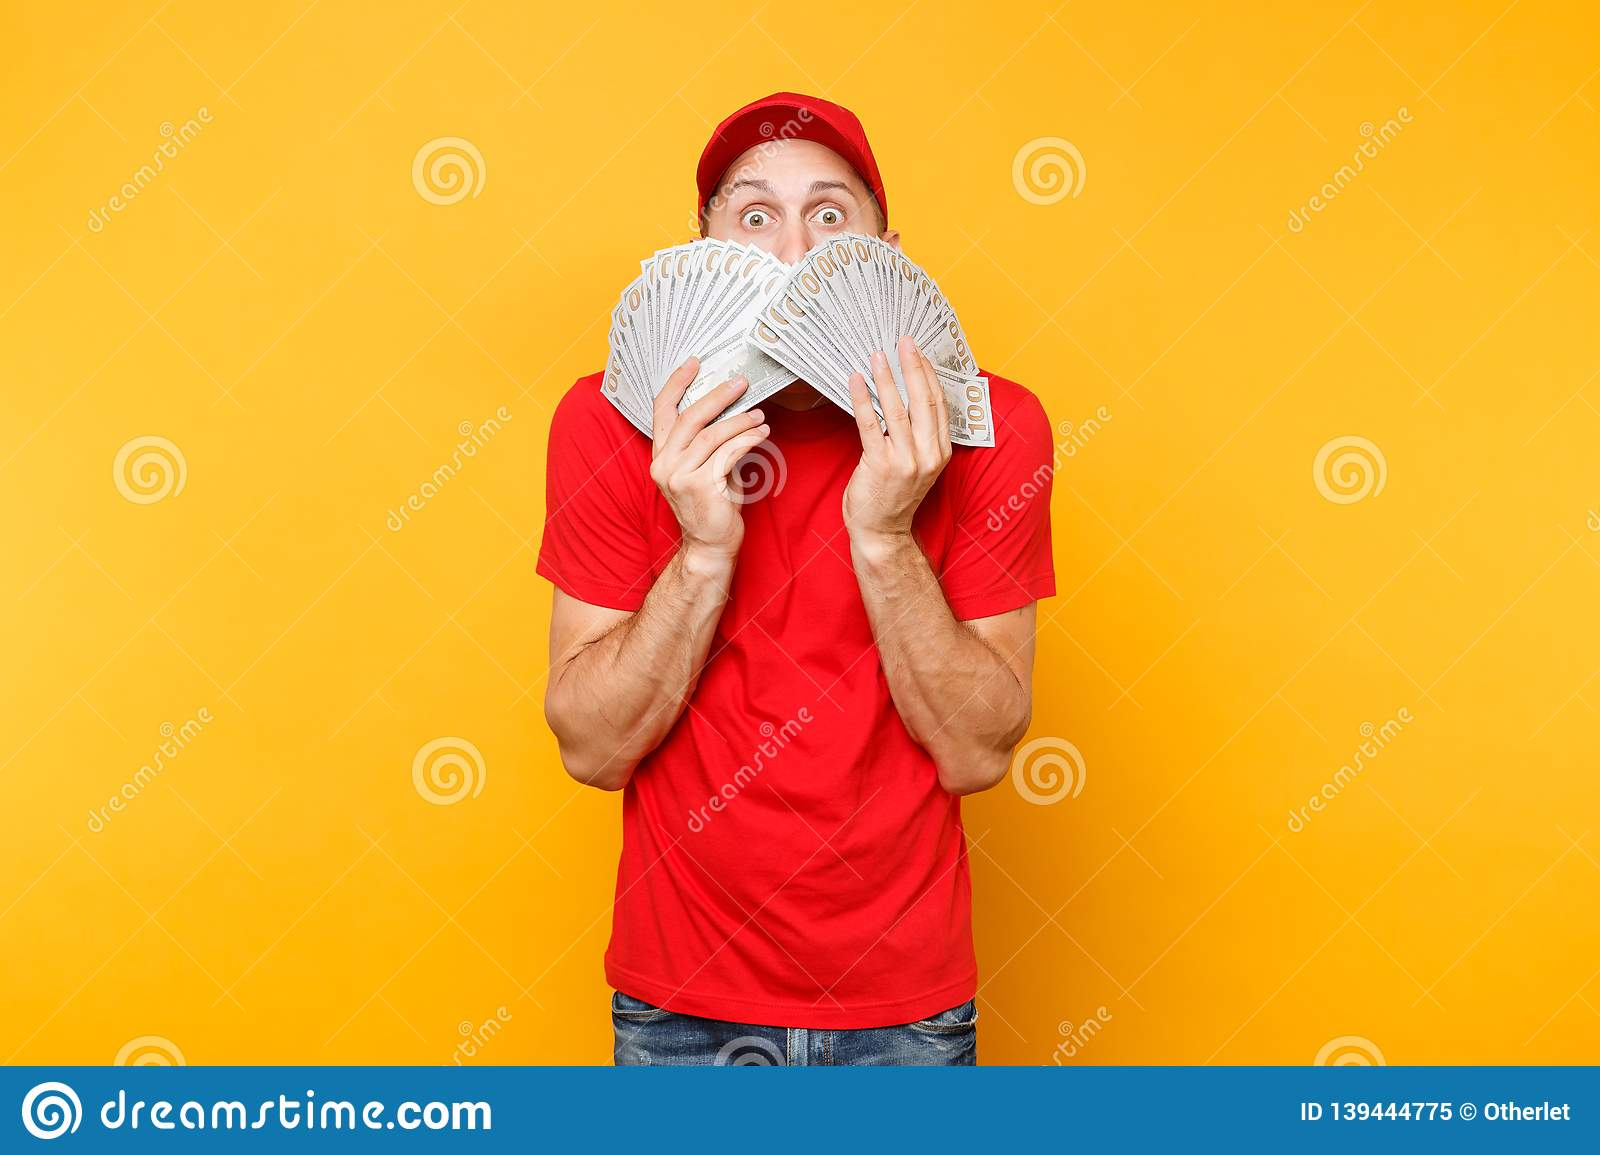 Delivery man in red uniform isolated on yellow orange background. Professional male employee in cap, t-shirt courier or